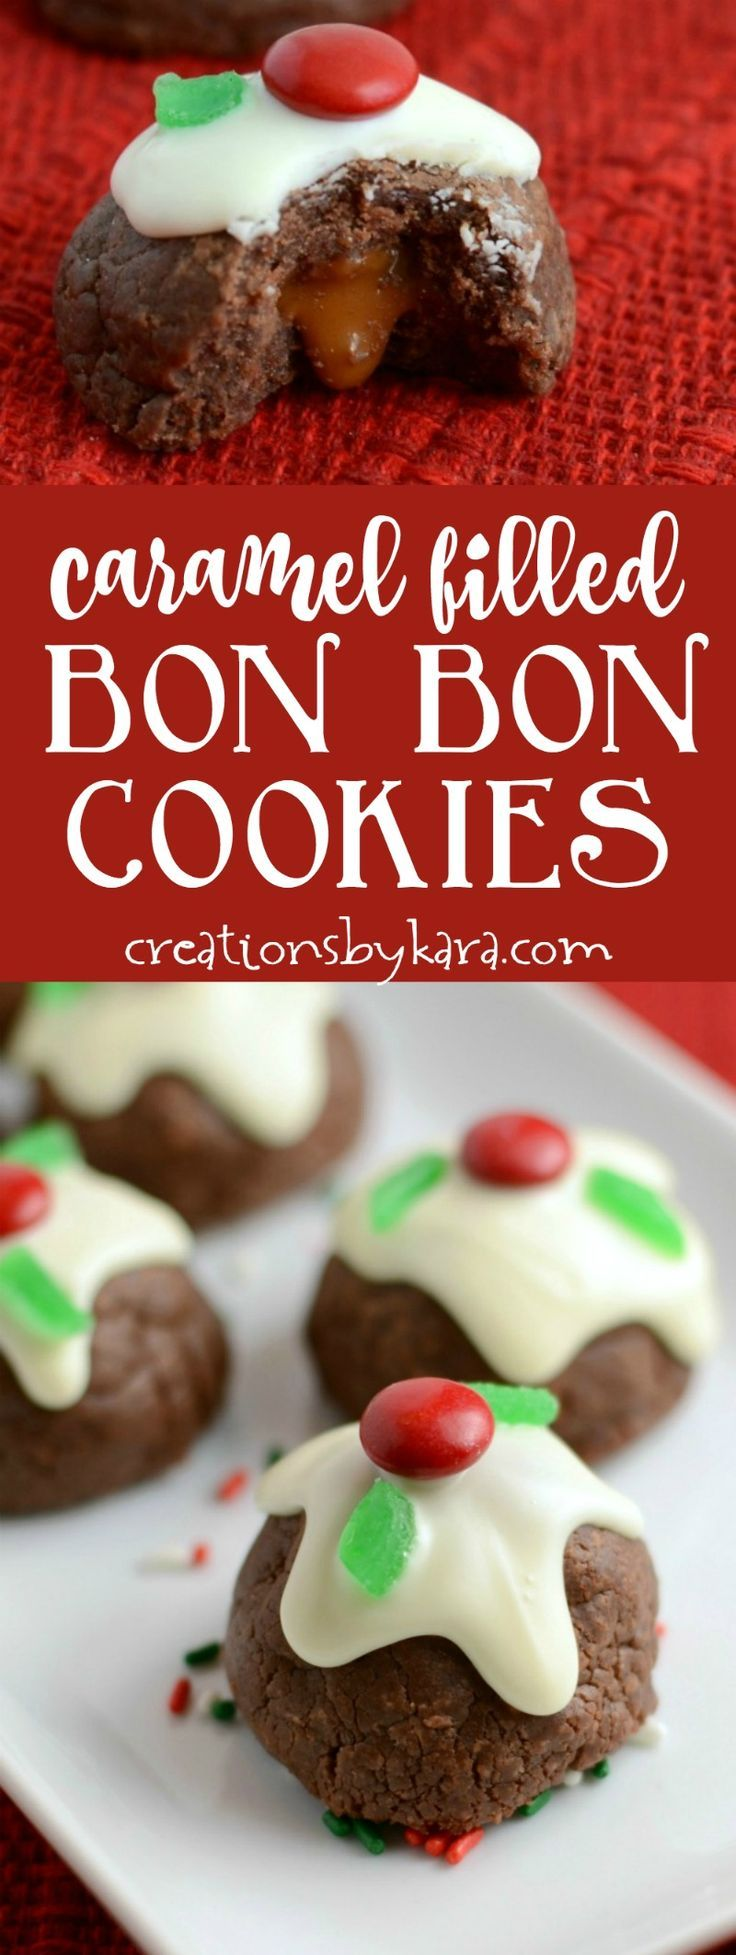 These pretty Bon Bon Cookies are perfect for Christmas, but you can omit the holly berries and serve them any time of year. They are decadent and delicious! via creationsbykara.com